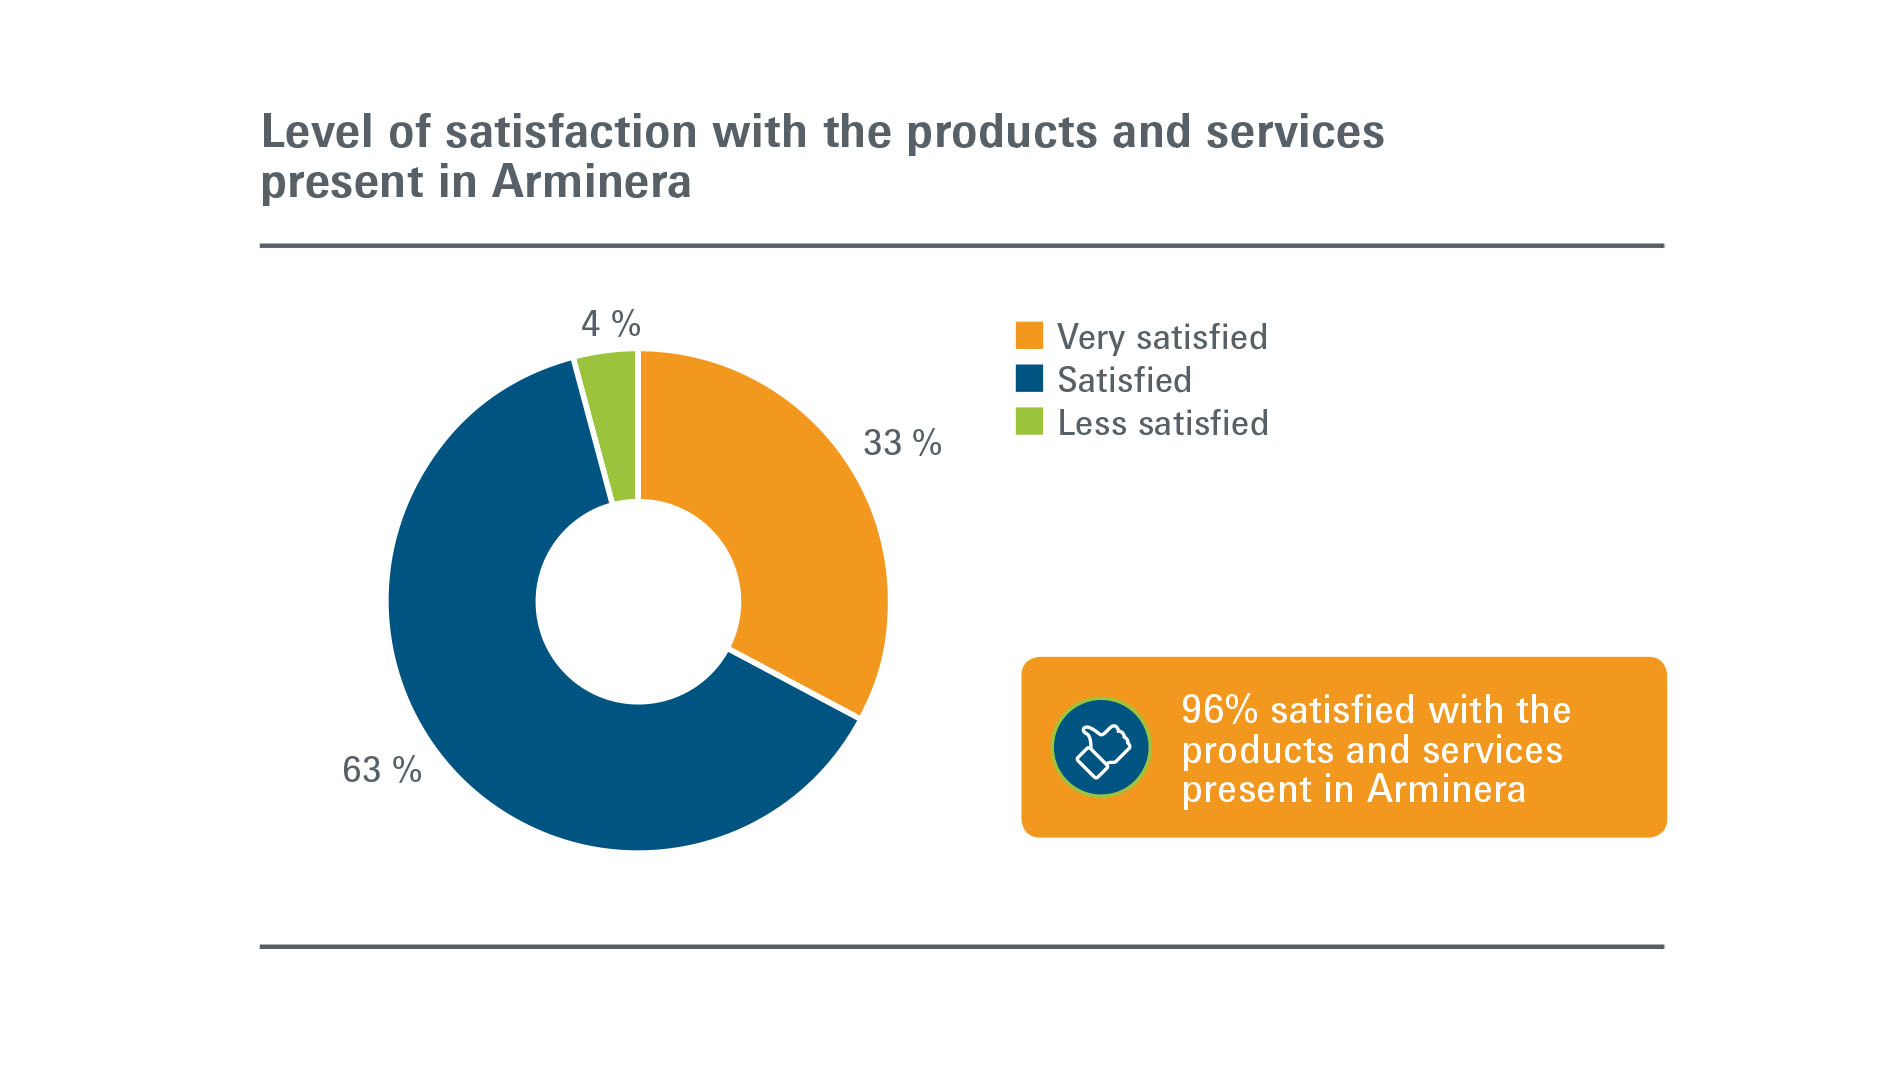 Arminera: Visitors - Level of satisfaction